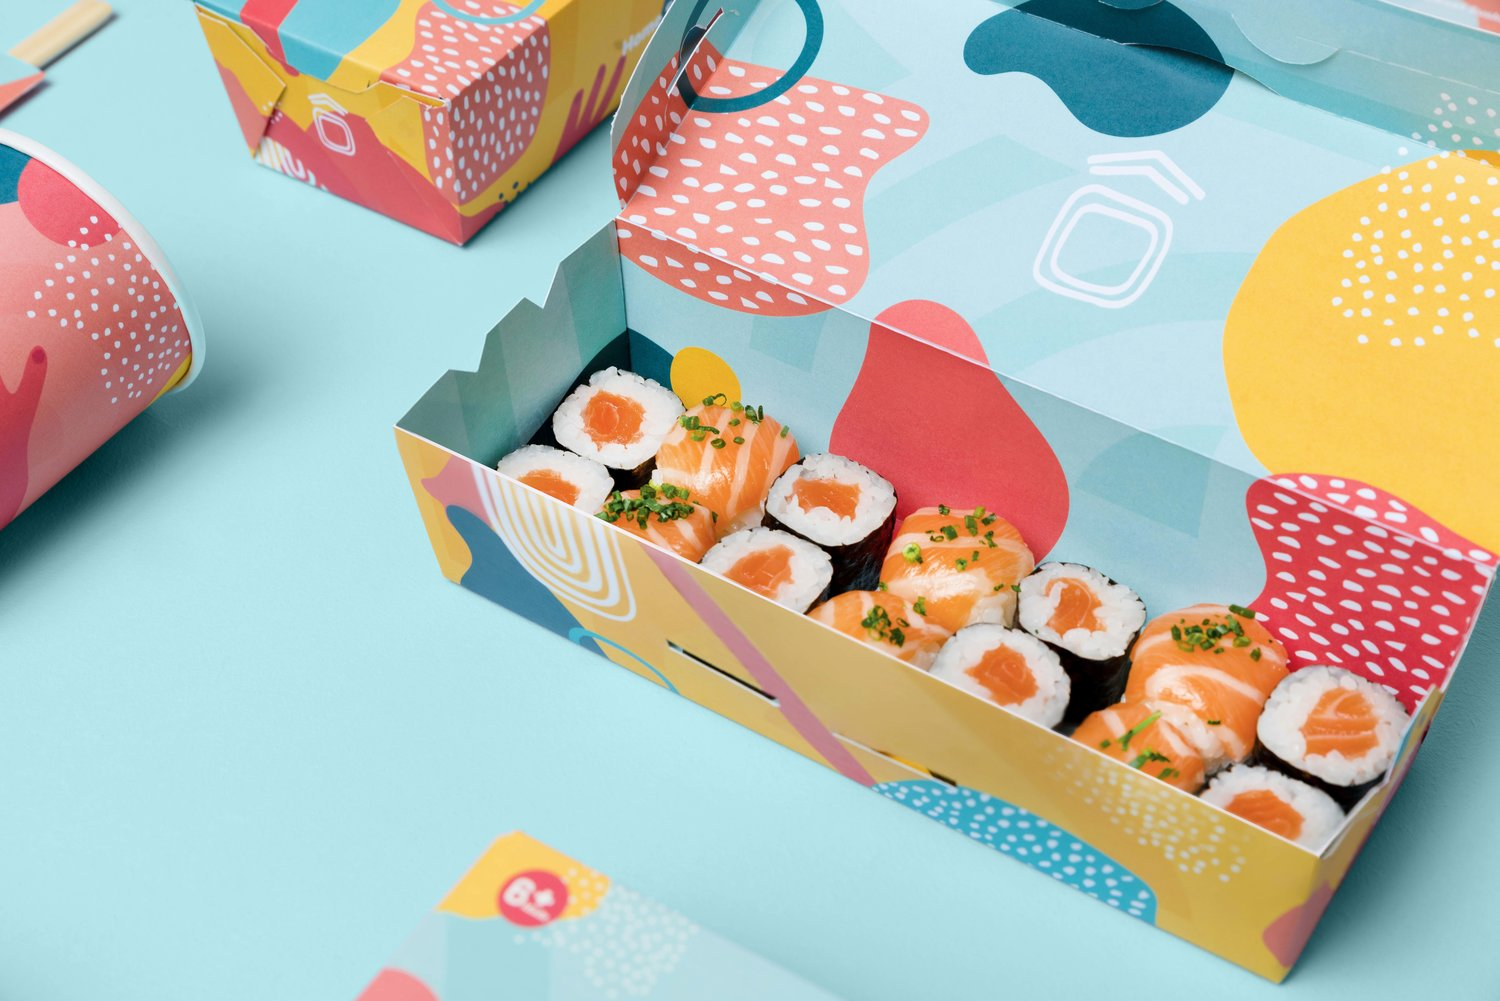 Home Sweet Home Sushi Kids — Confusing yet beautiful Product Design!